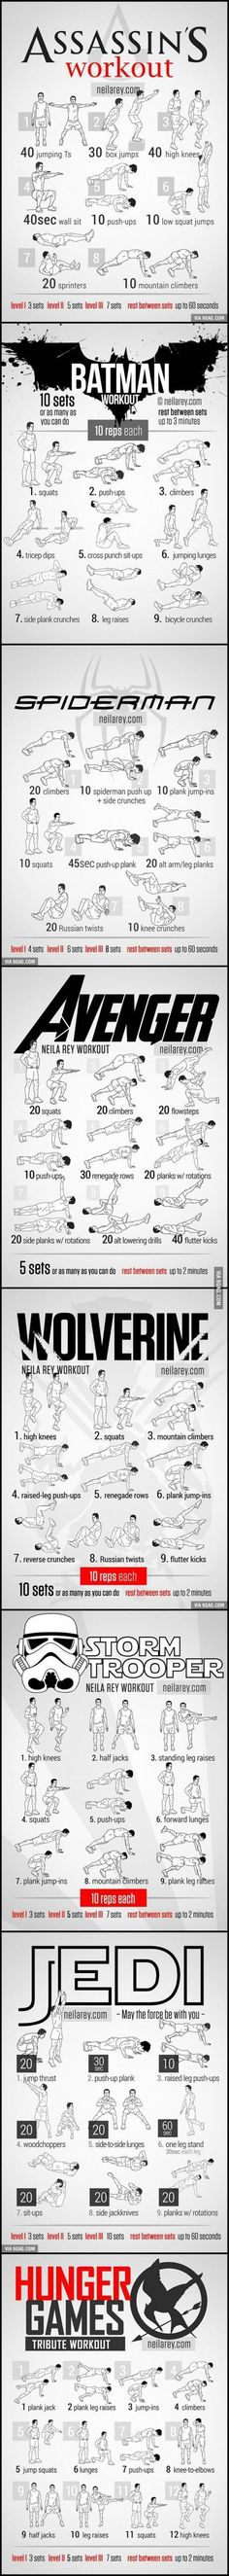 Victory Weight: Workout for Assassin, Batman, Spiderman, Avenger, ...